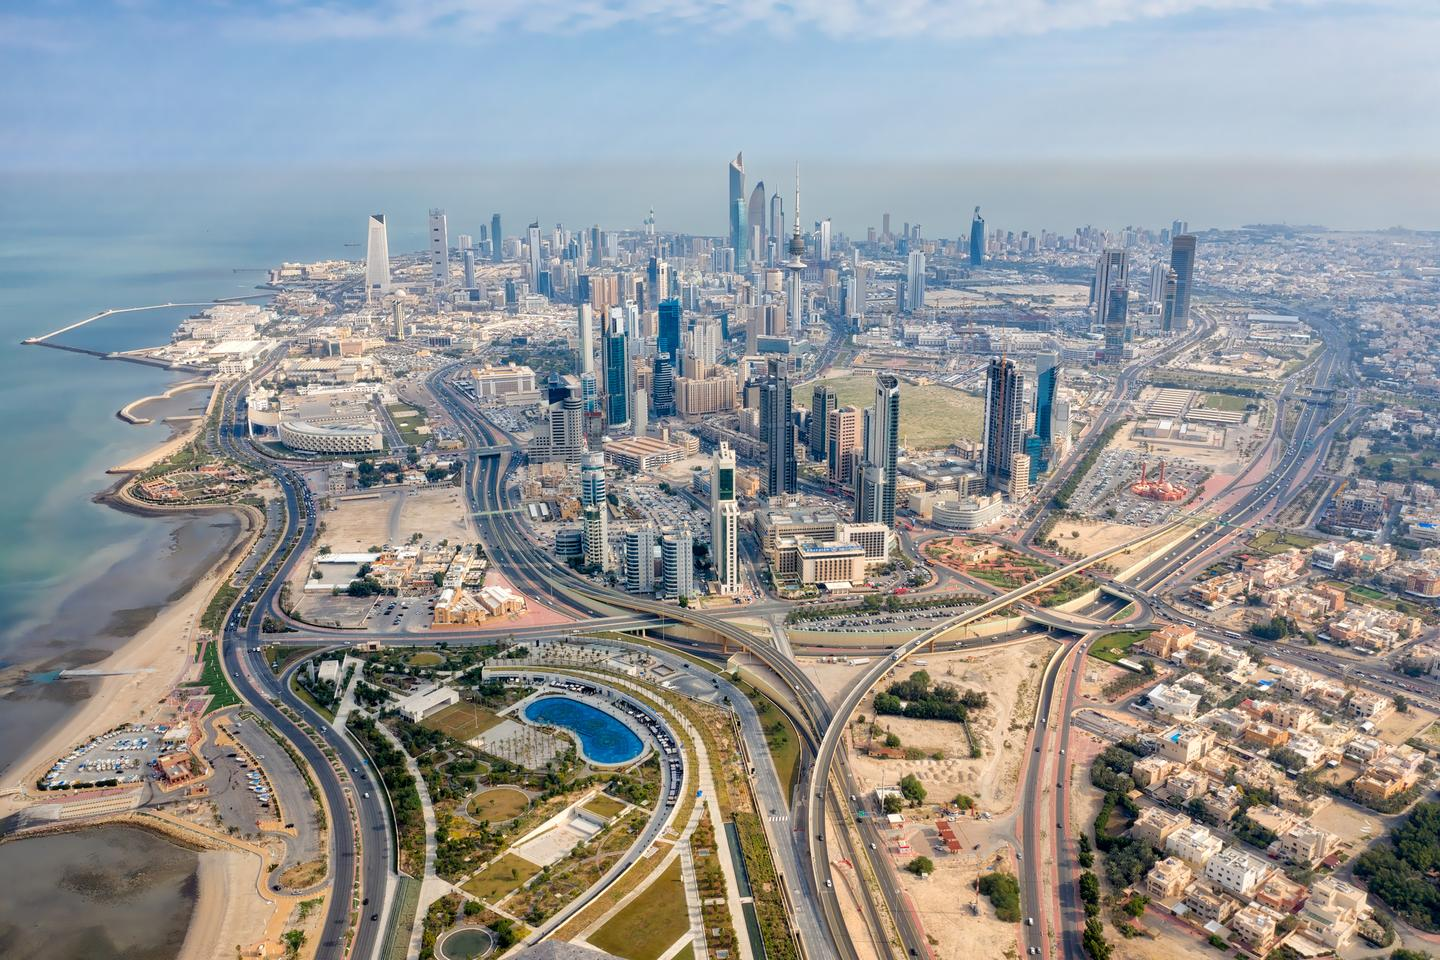 Kuwait is known for setting –and breaking – high temperature records